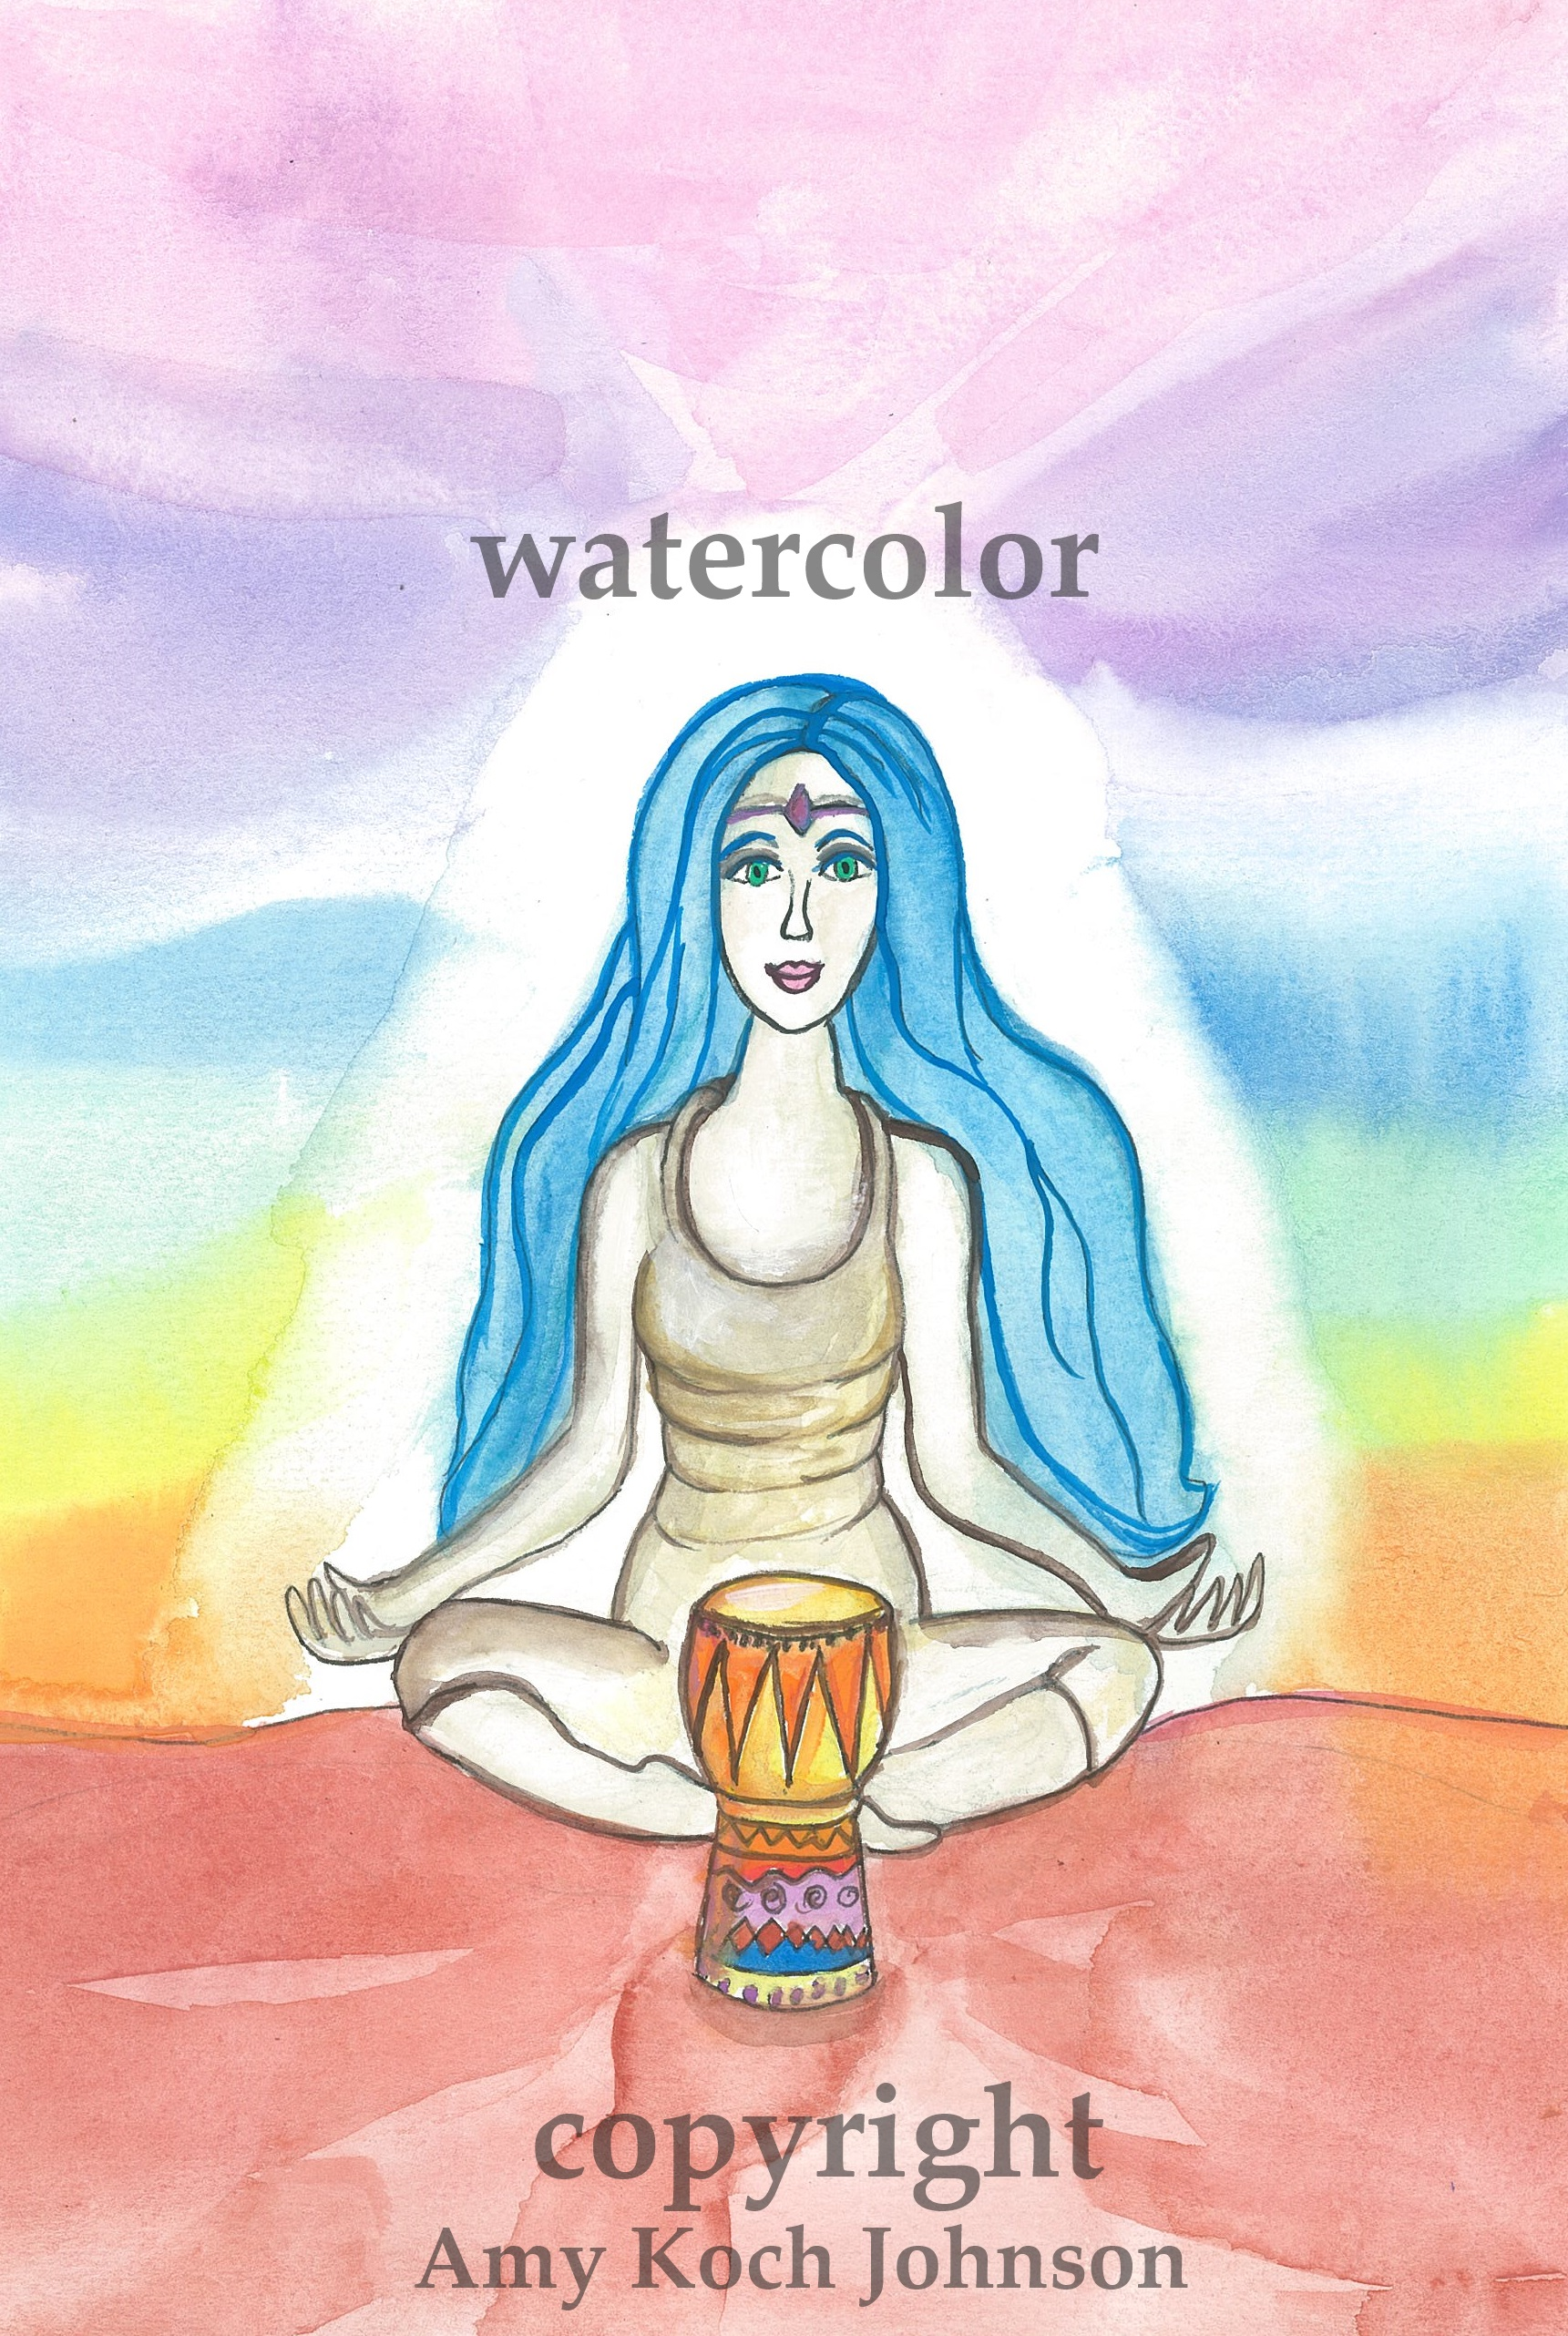 watercolortoshow